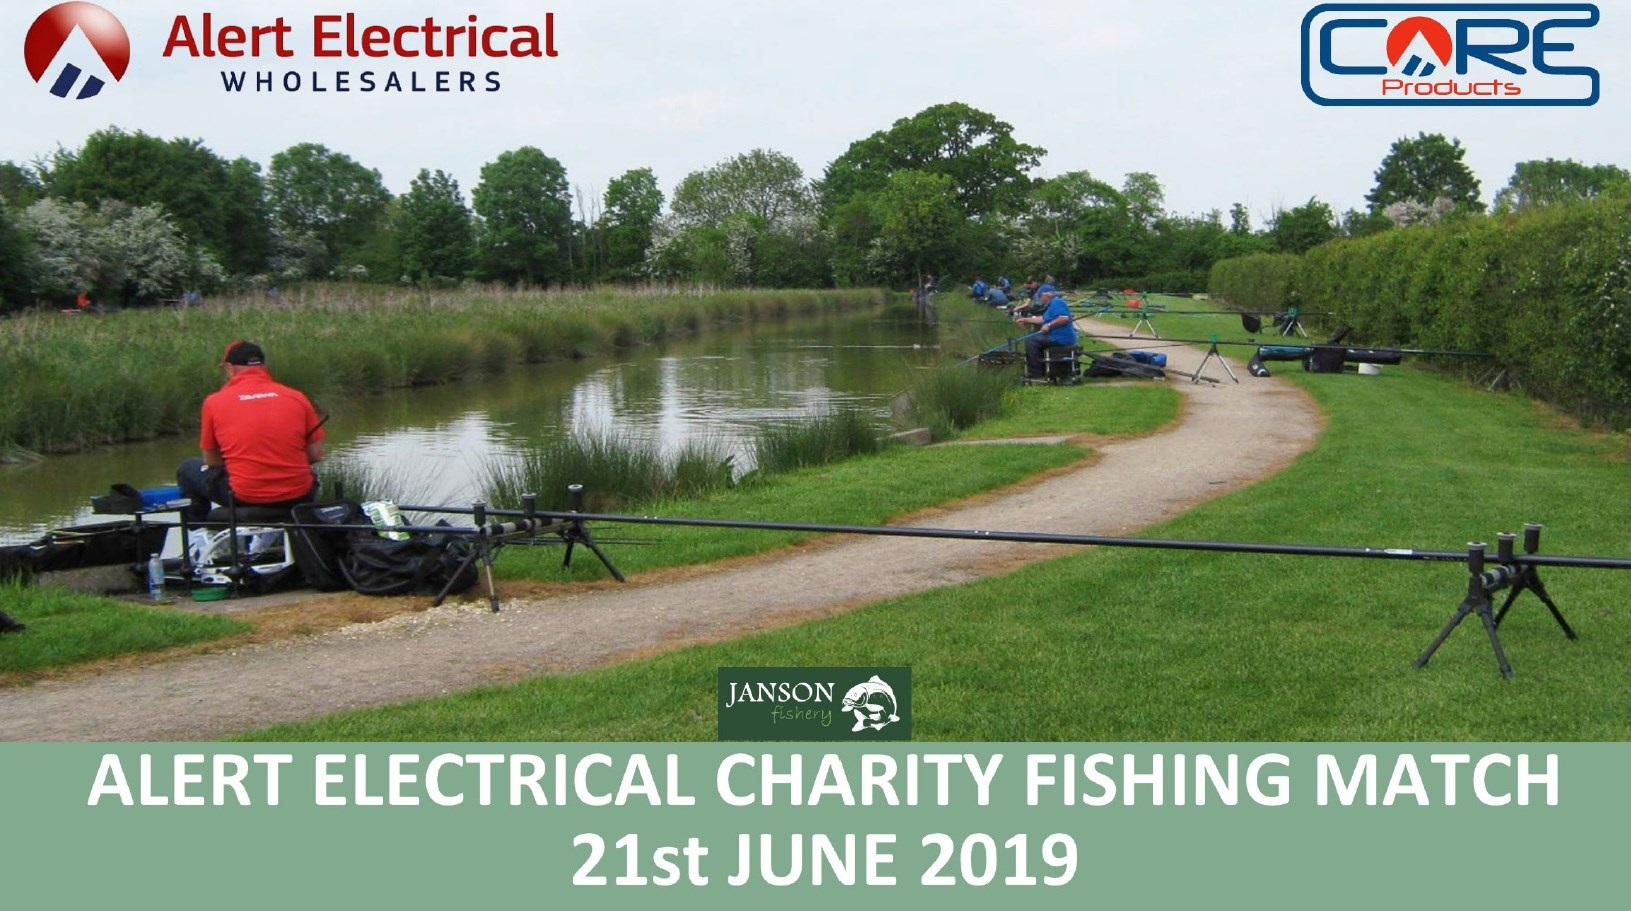 Dust Off Those Rods & Let's Go Fishing. Alert Electrical Wholesalers Charity Fishing Day